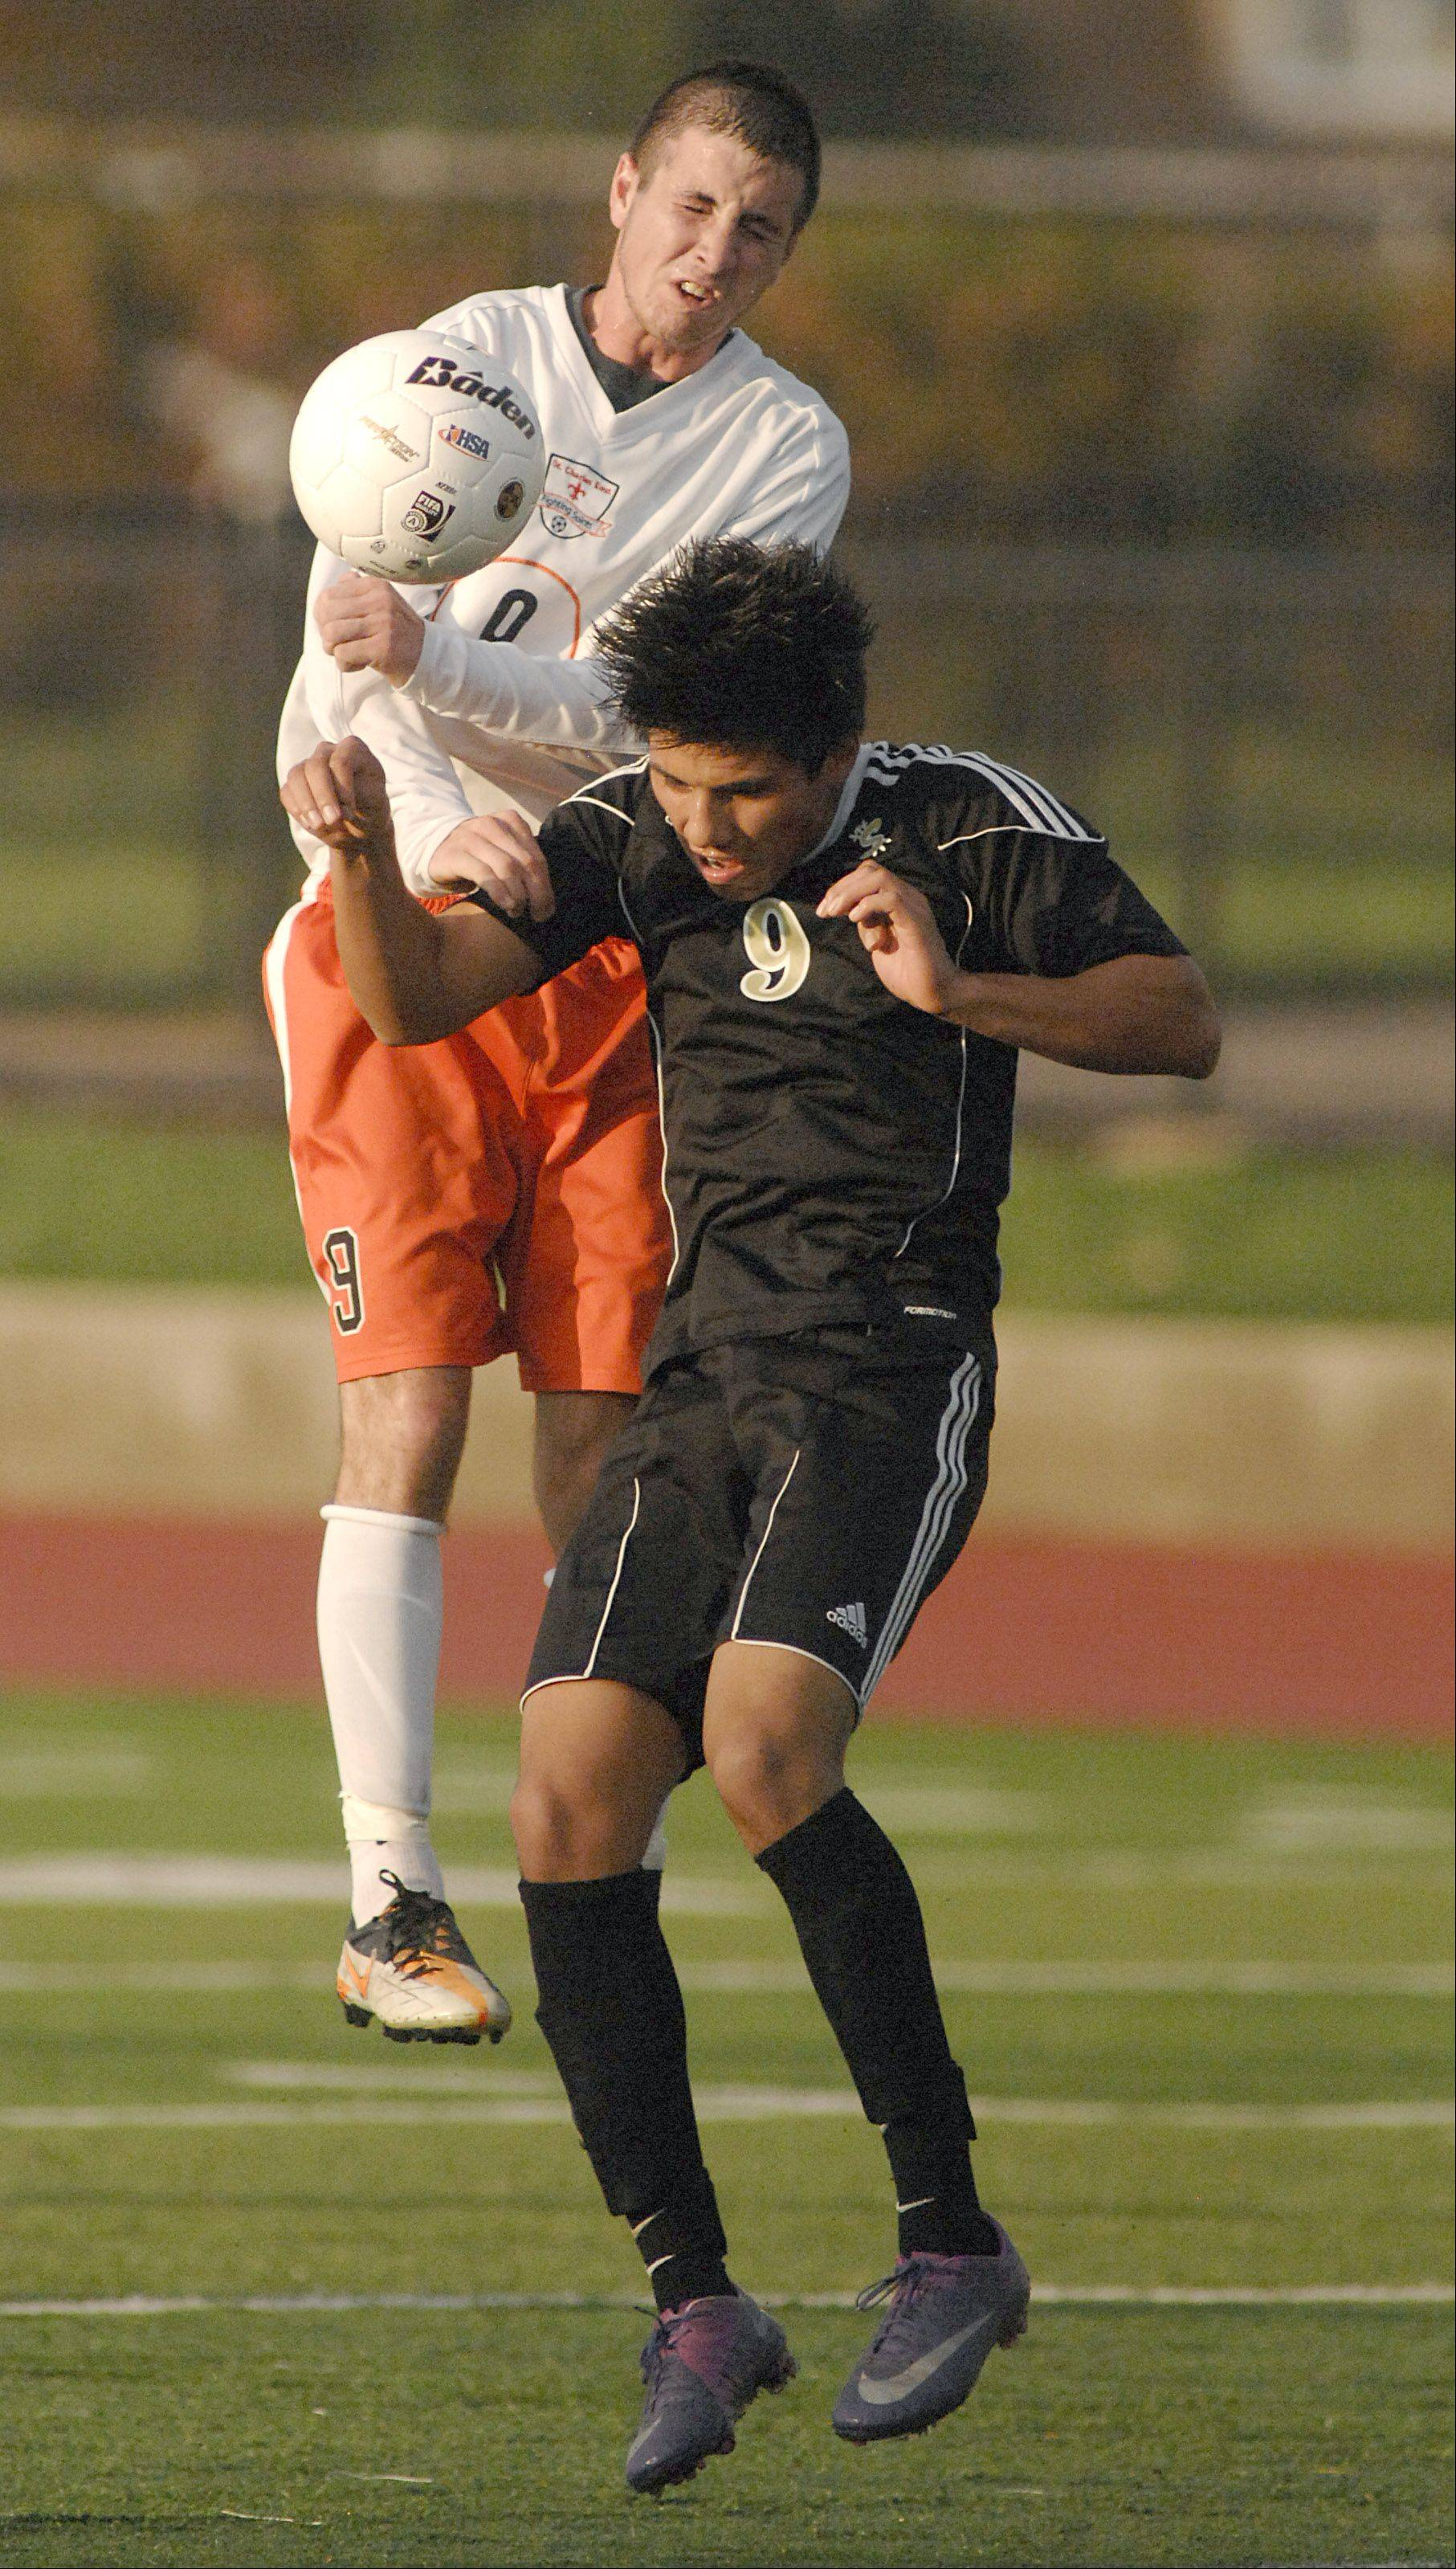 Streamwood's Mario Rodriguez and St. Charles East's Brian Gielow collide in the first half on Tuesday, October 23.